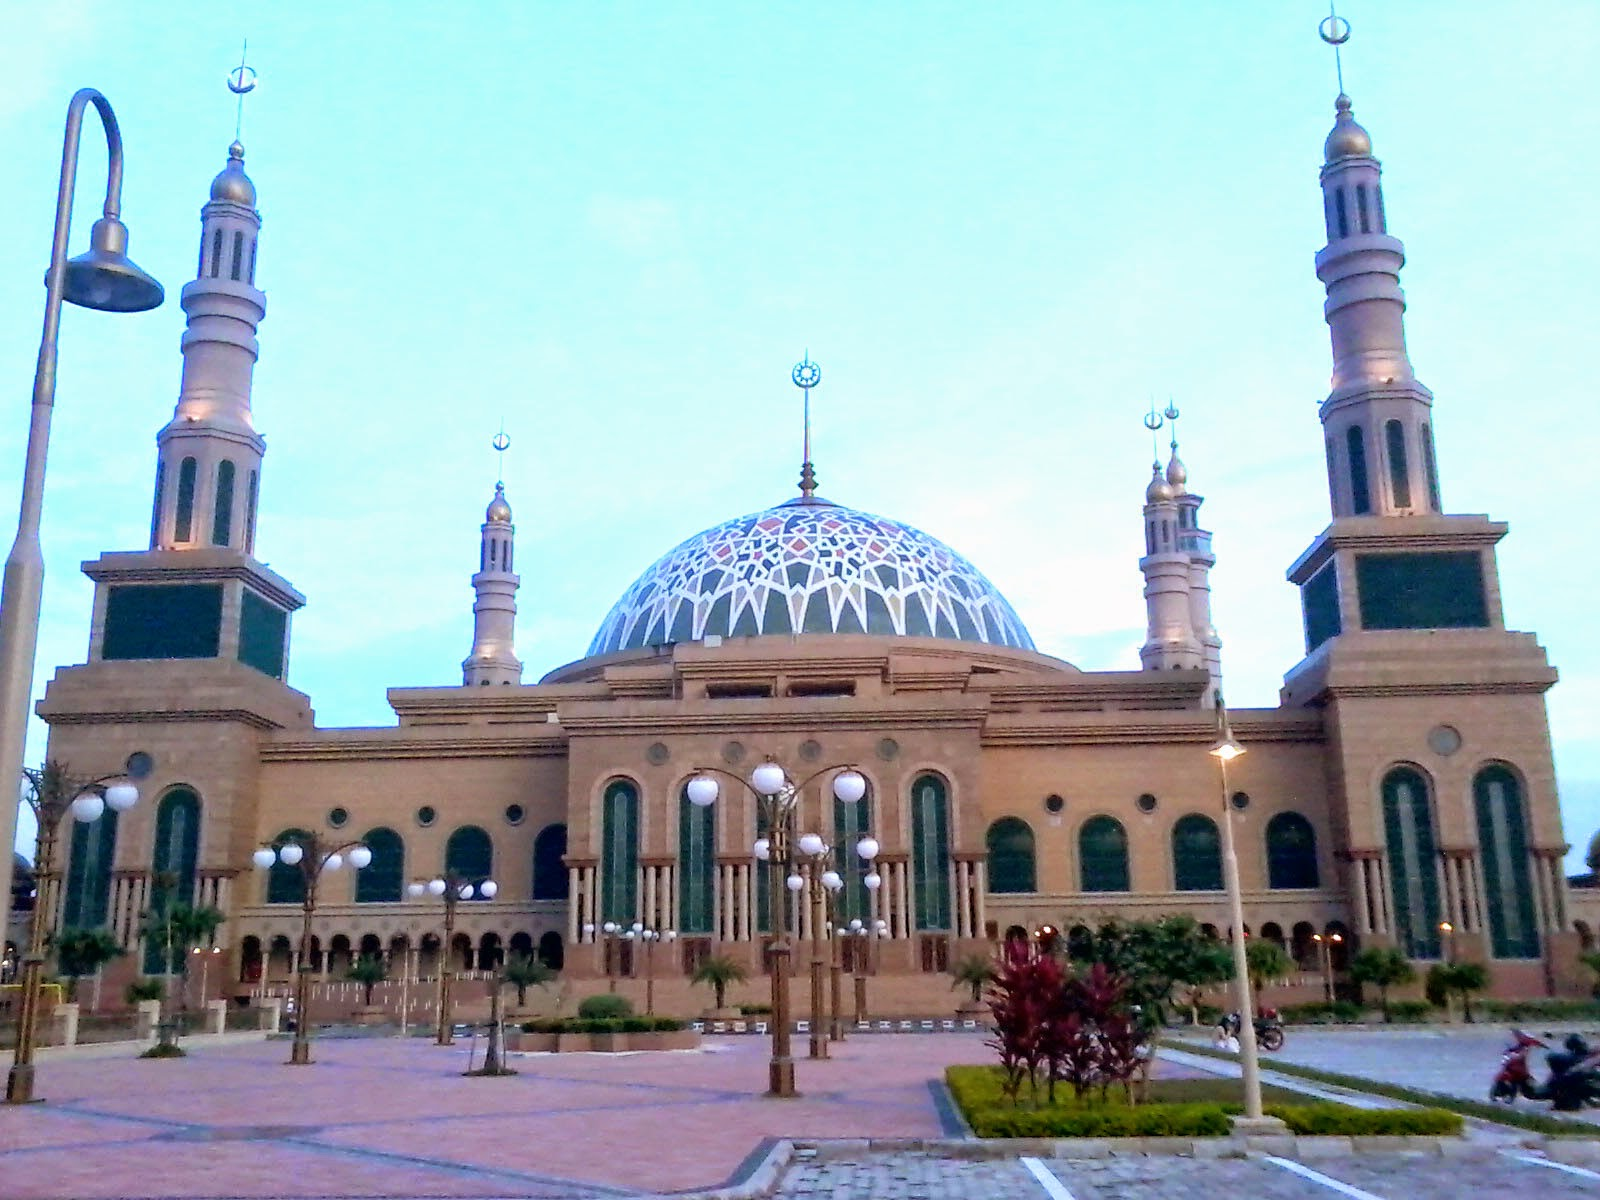 Masjid Islamic Center Samarinda